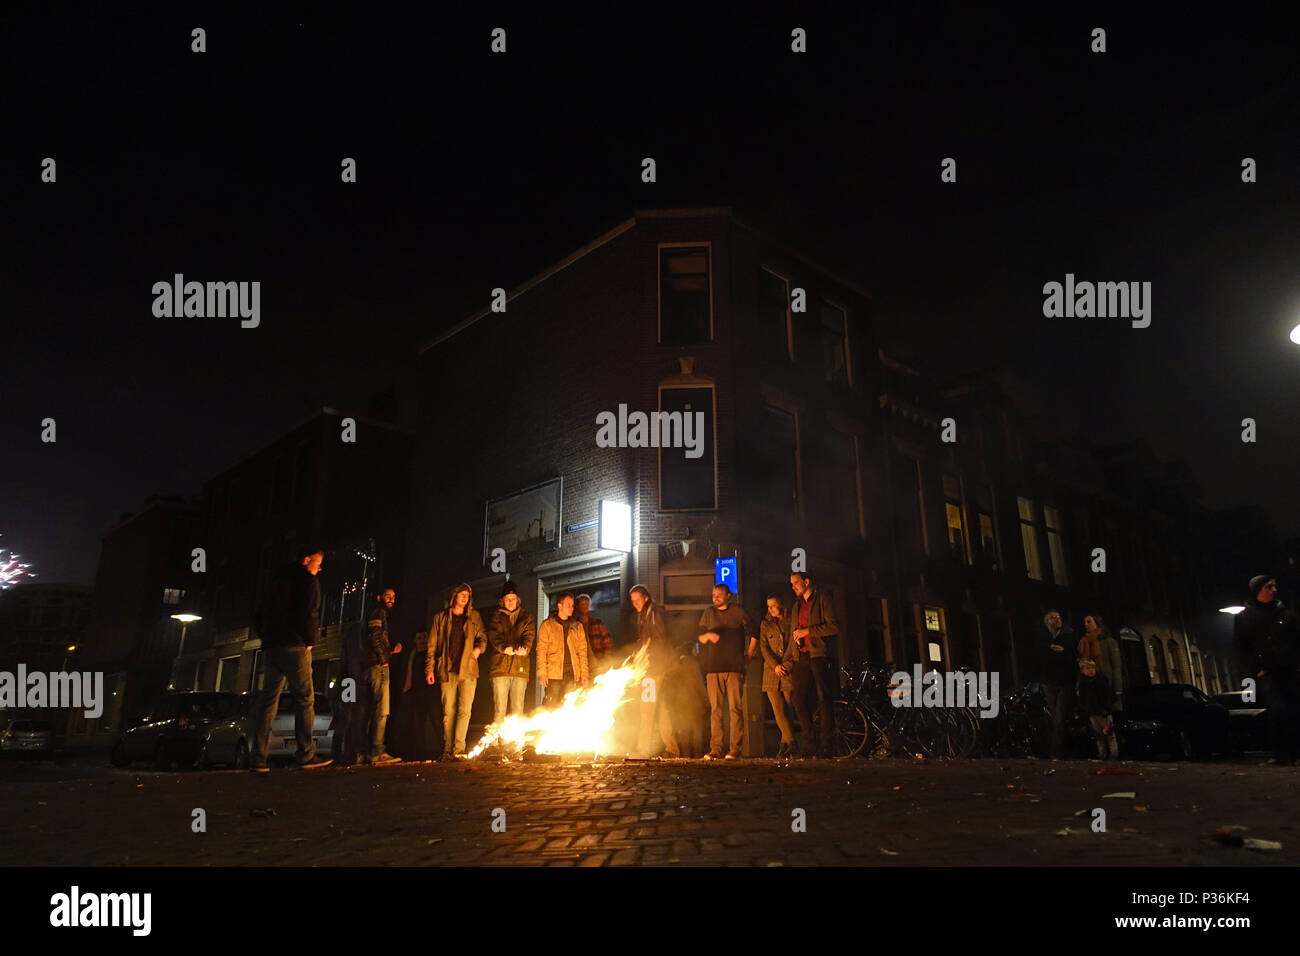 Utrecht, Netherlands, people are standing in the street in front of a small fire at night - Stock Image